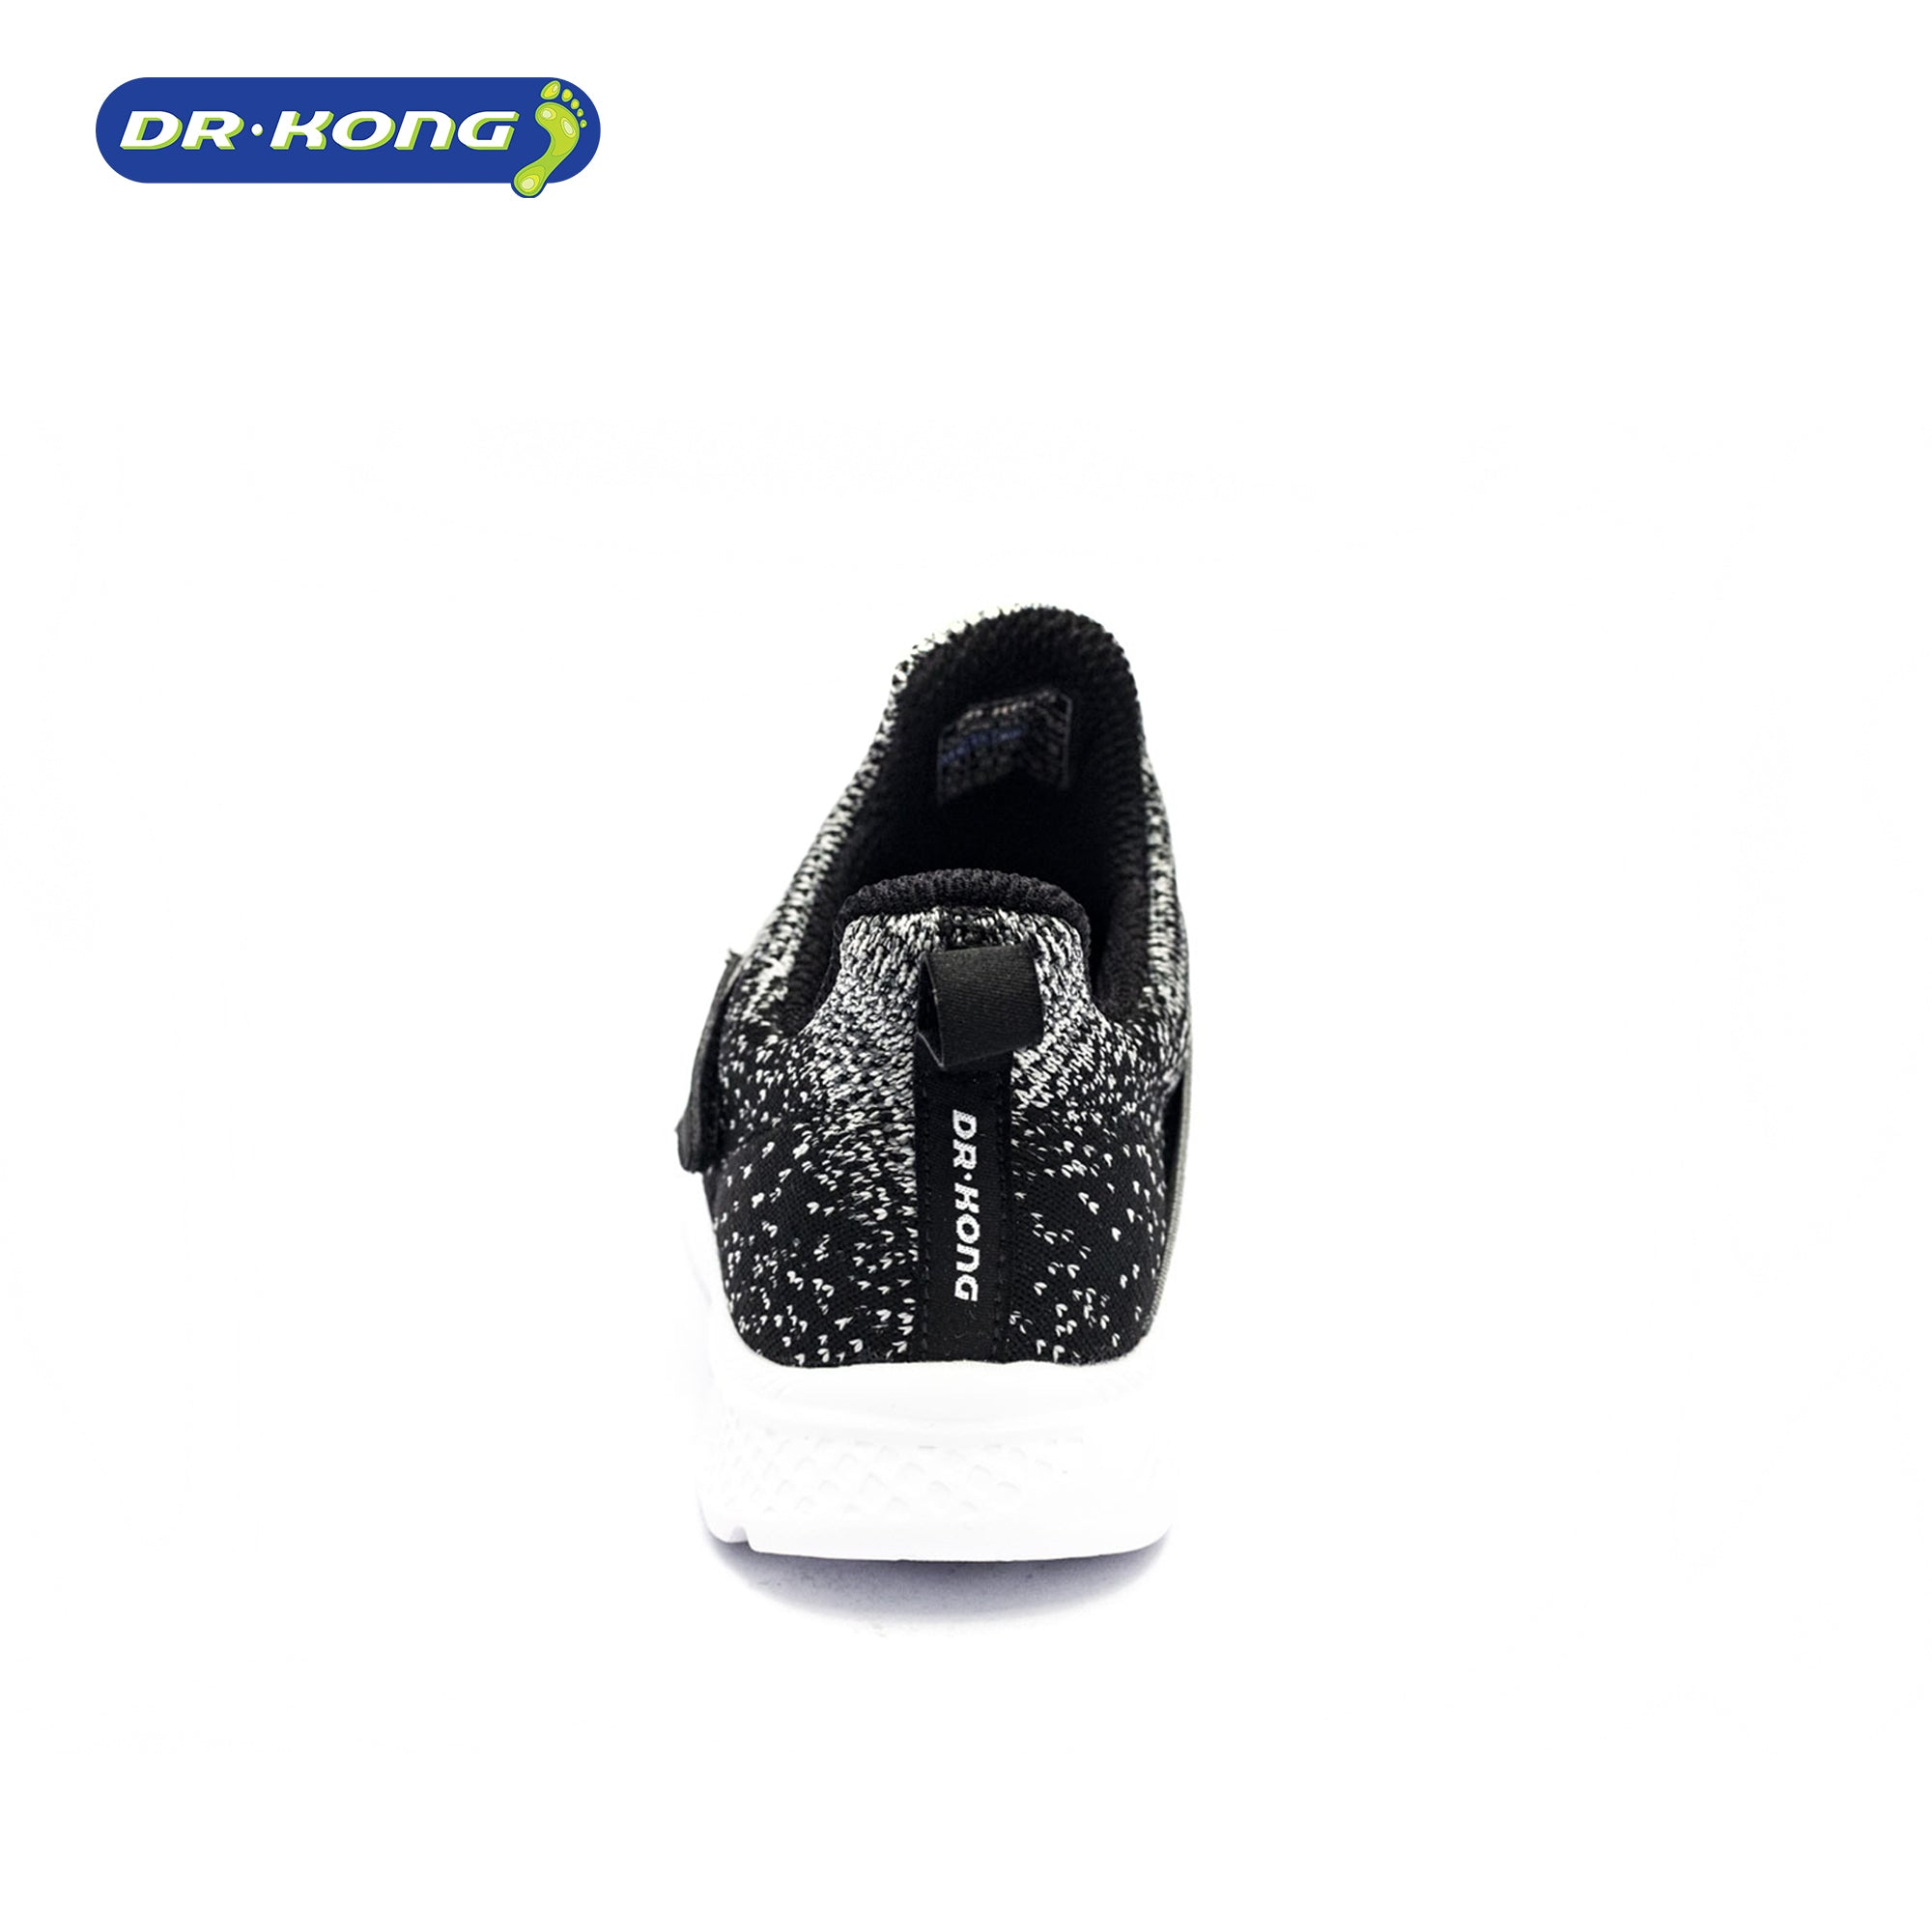 Dr. Kong Healthy Childrens Sneakers (Blk/Gray) c1000187